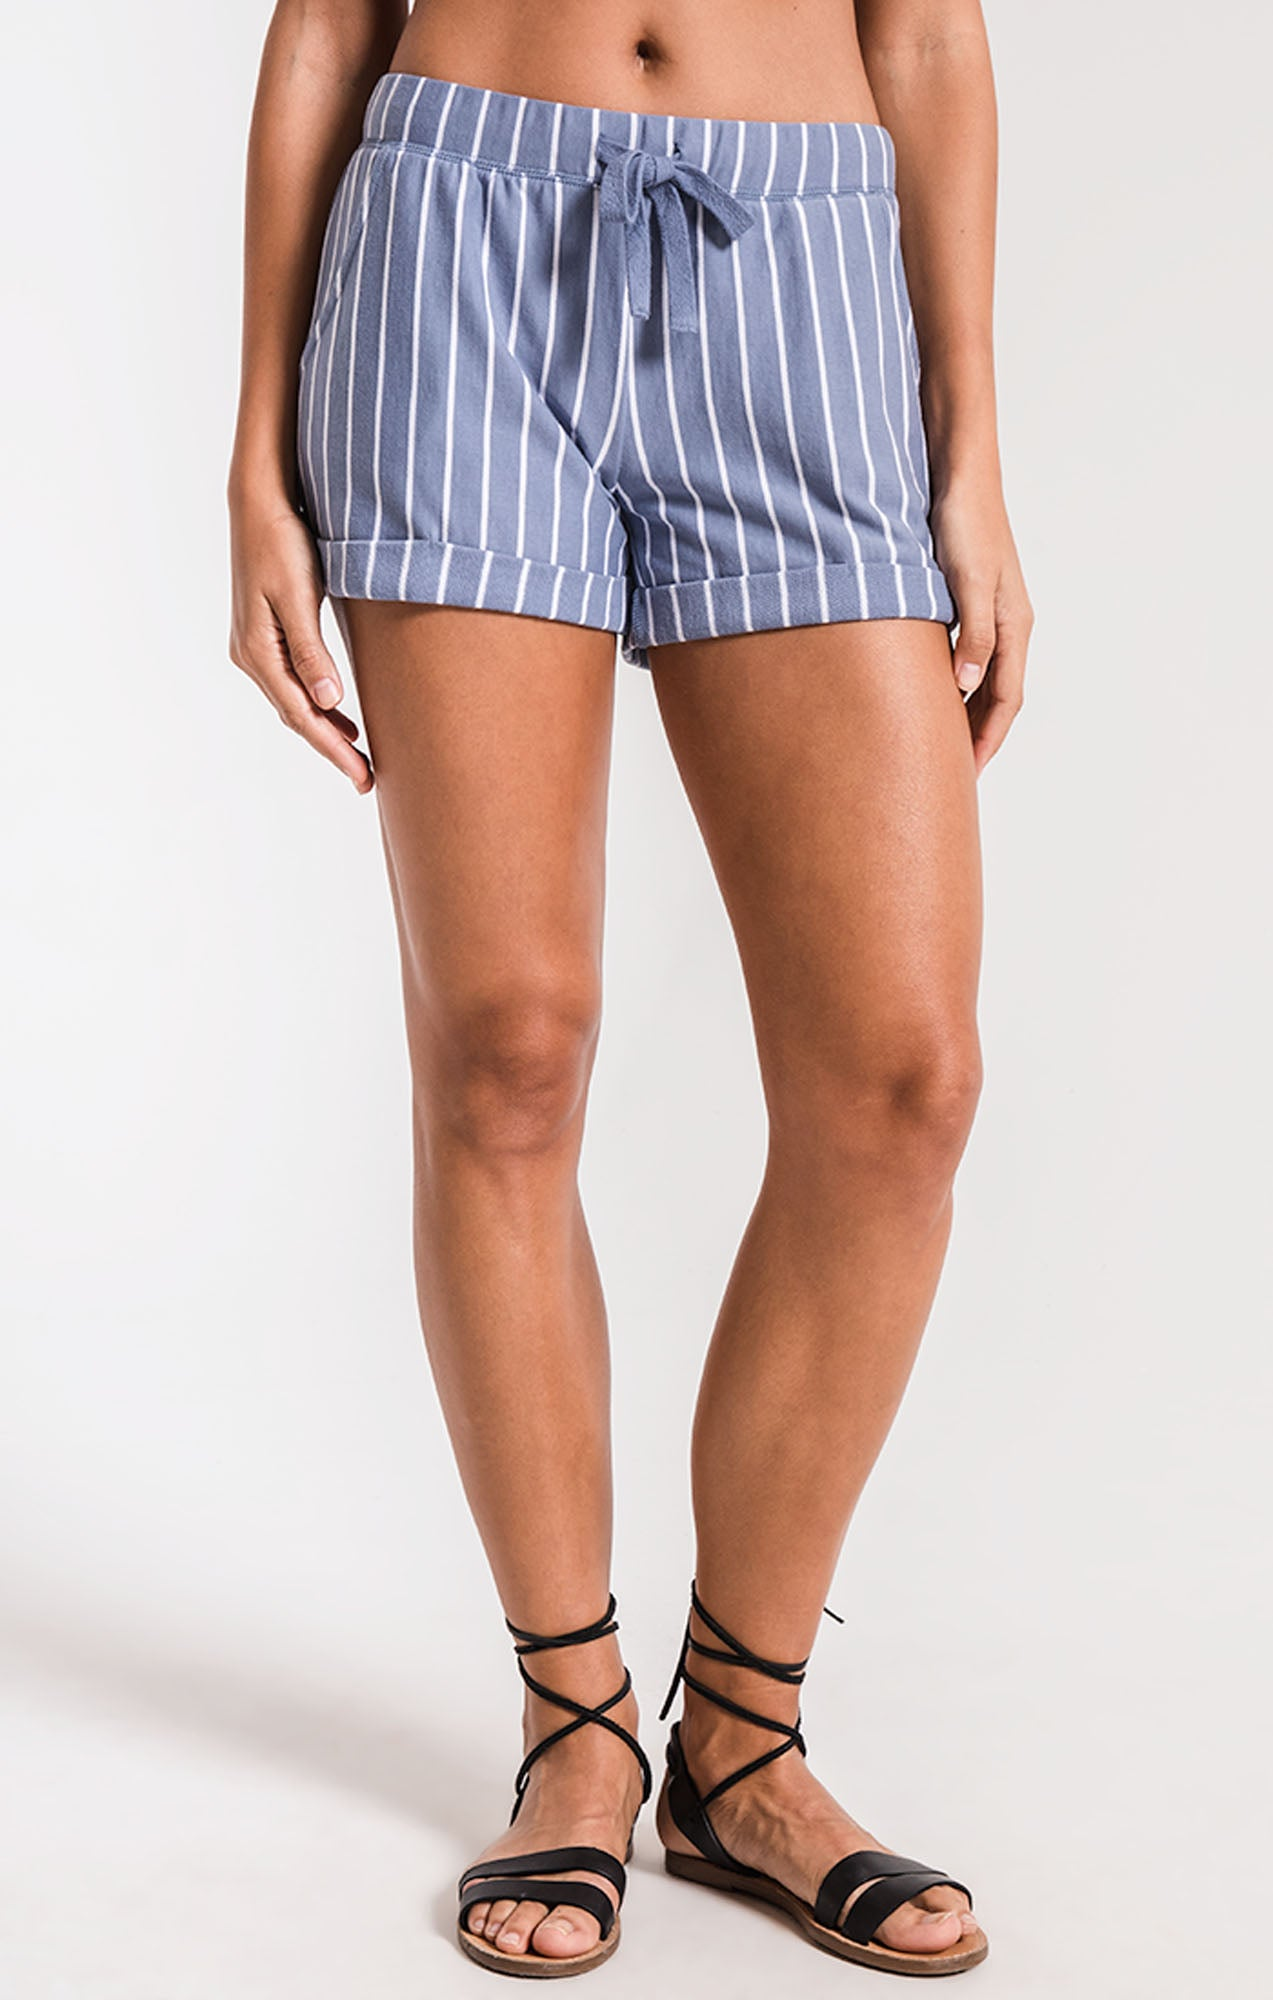 Shorts The Pinstripe Boyfriend Short Moody Blue/White